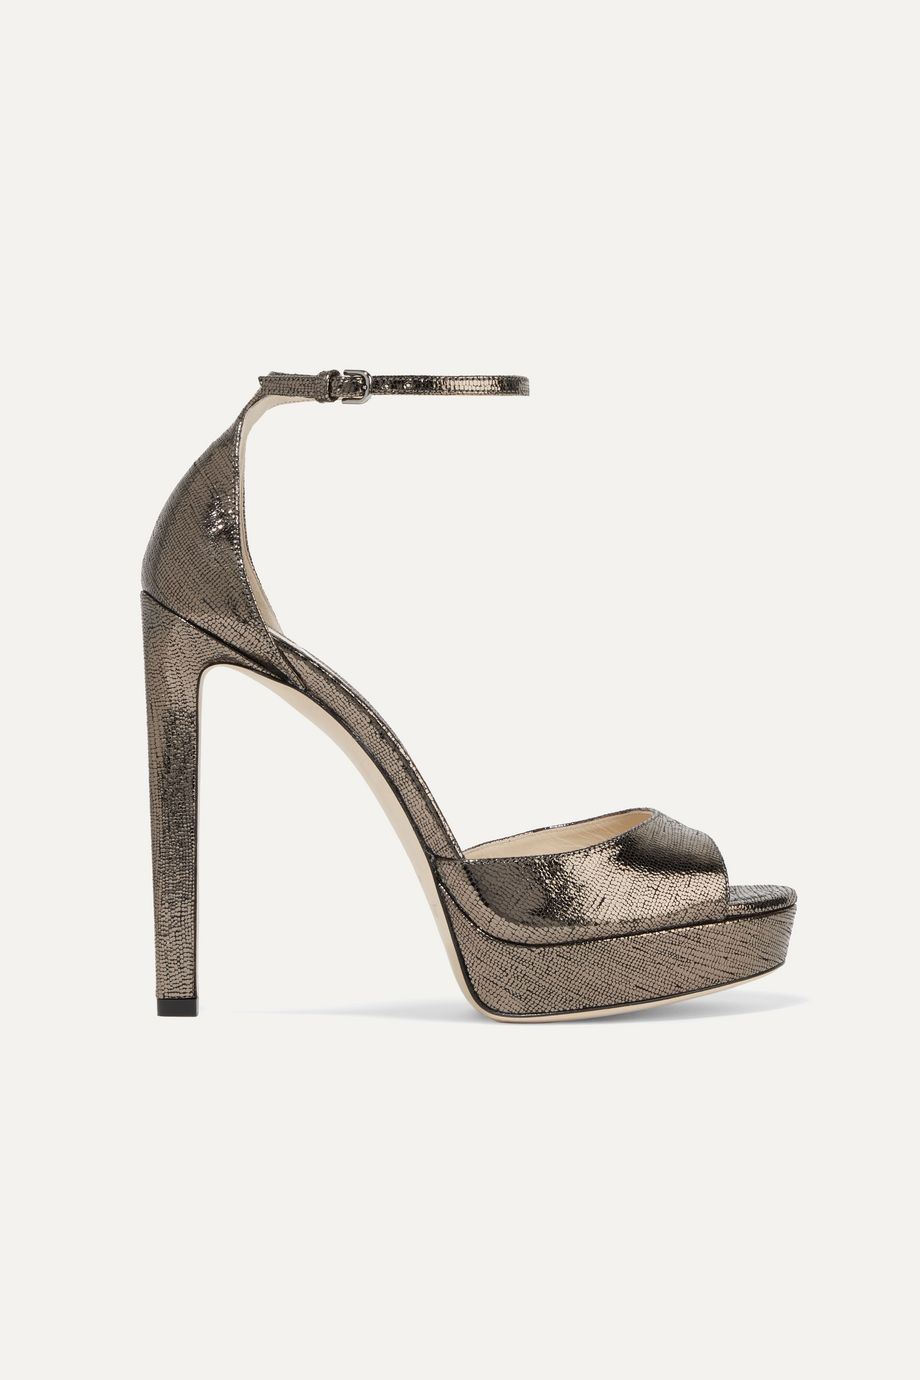 Jimmy Choo Pattie 130 metallic lizard-effect leather platform sandals